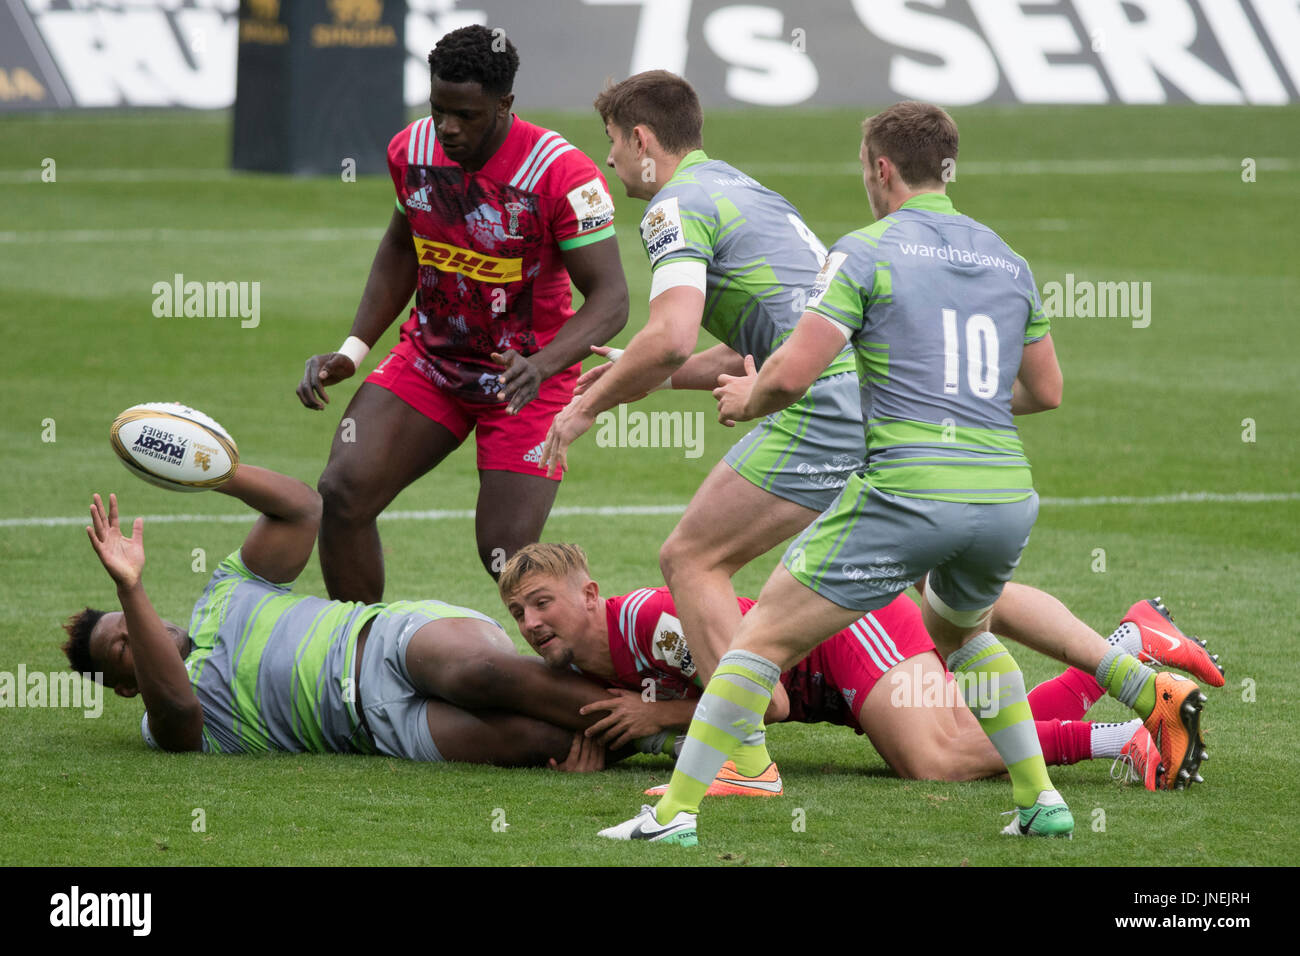 Northampton, UK. 29th July, 2017. The Harlequins  and Newcastle  Falcons Rugby 7 S Premiership Series at  Northampton Franklins Garden Credit: PATRICK ANTHONISZ/Alamy Live News - Stock Image